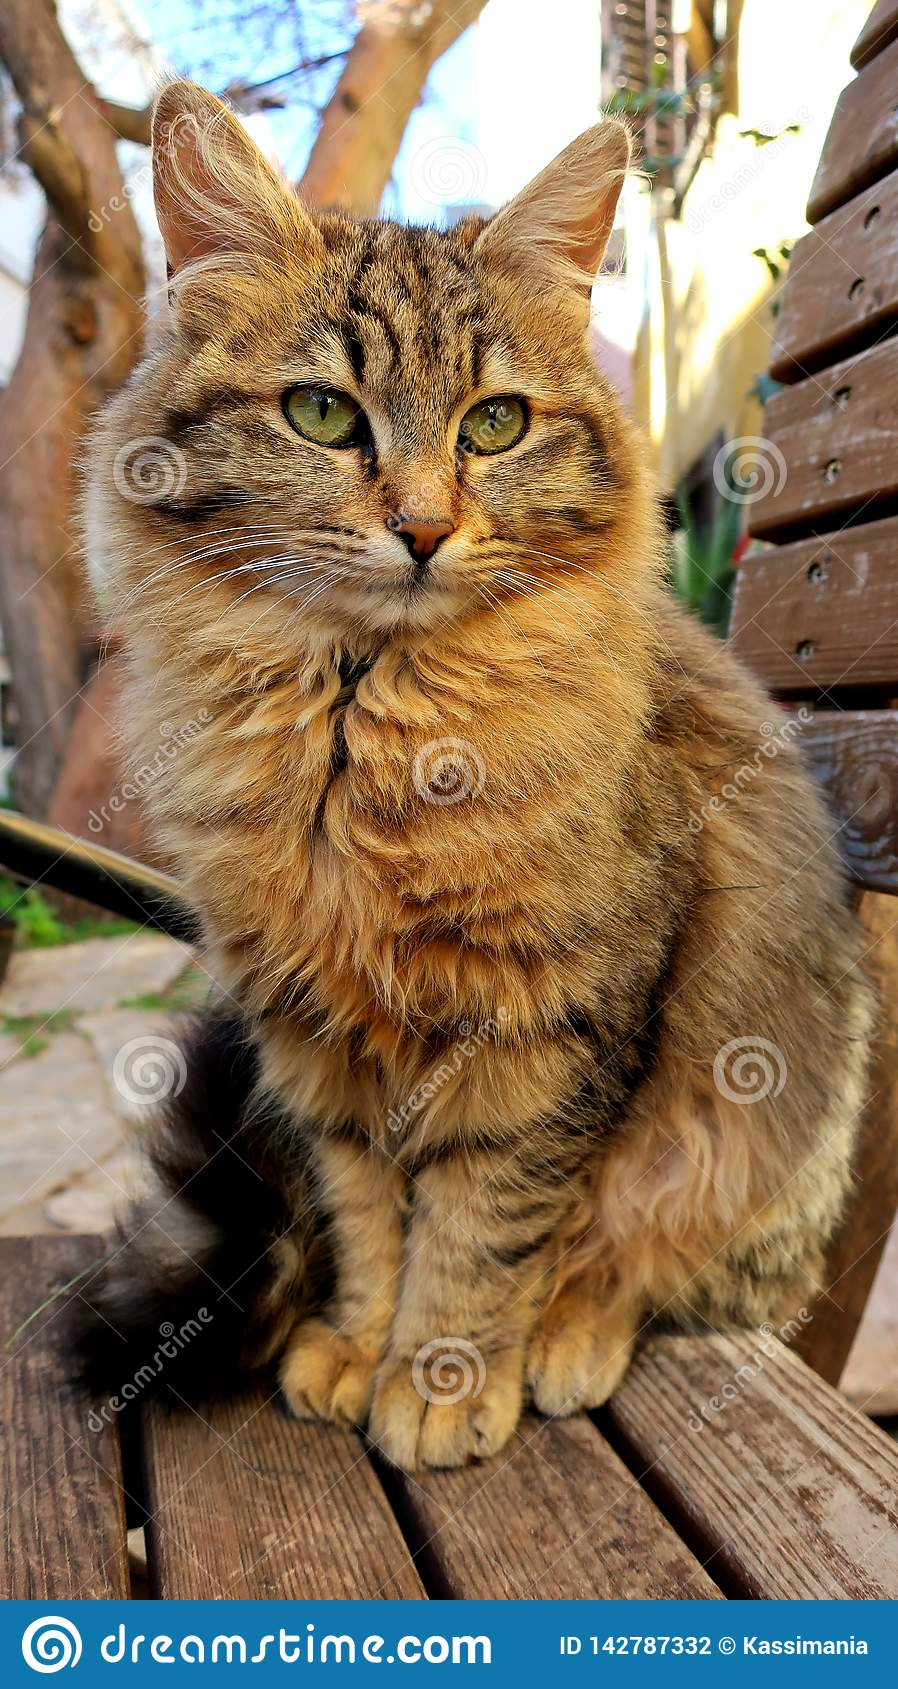 The cat with the green eyes on the stret